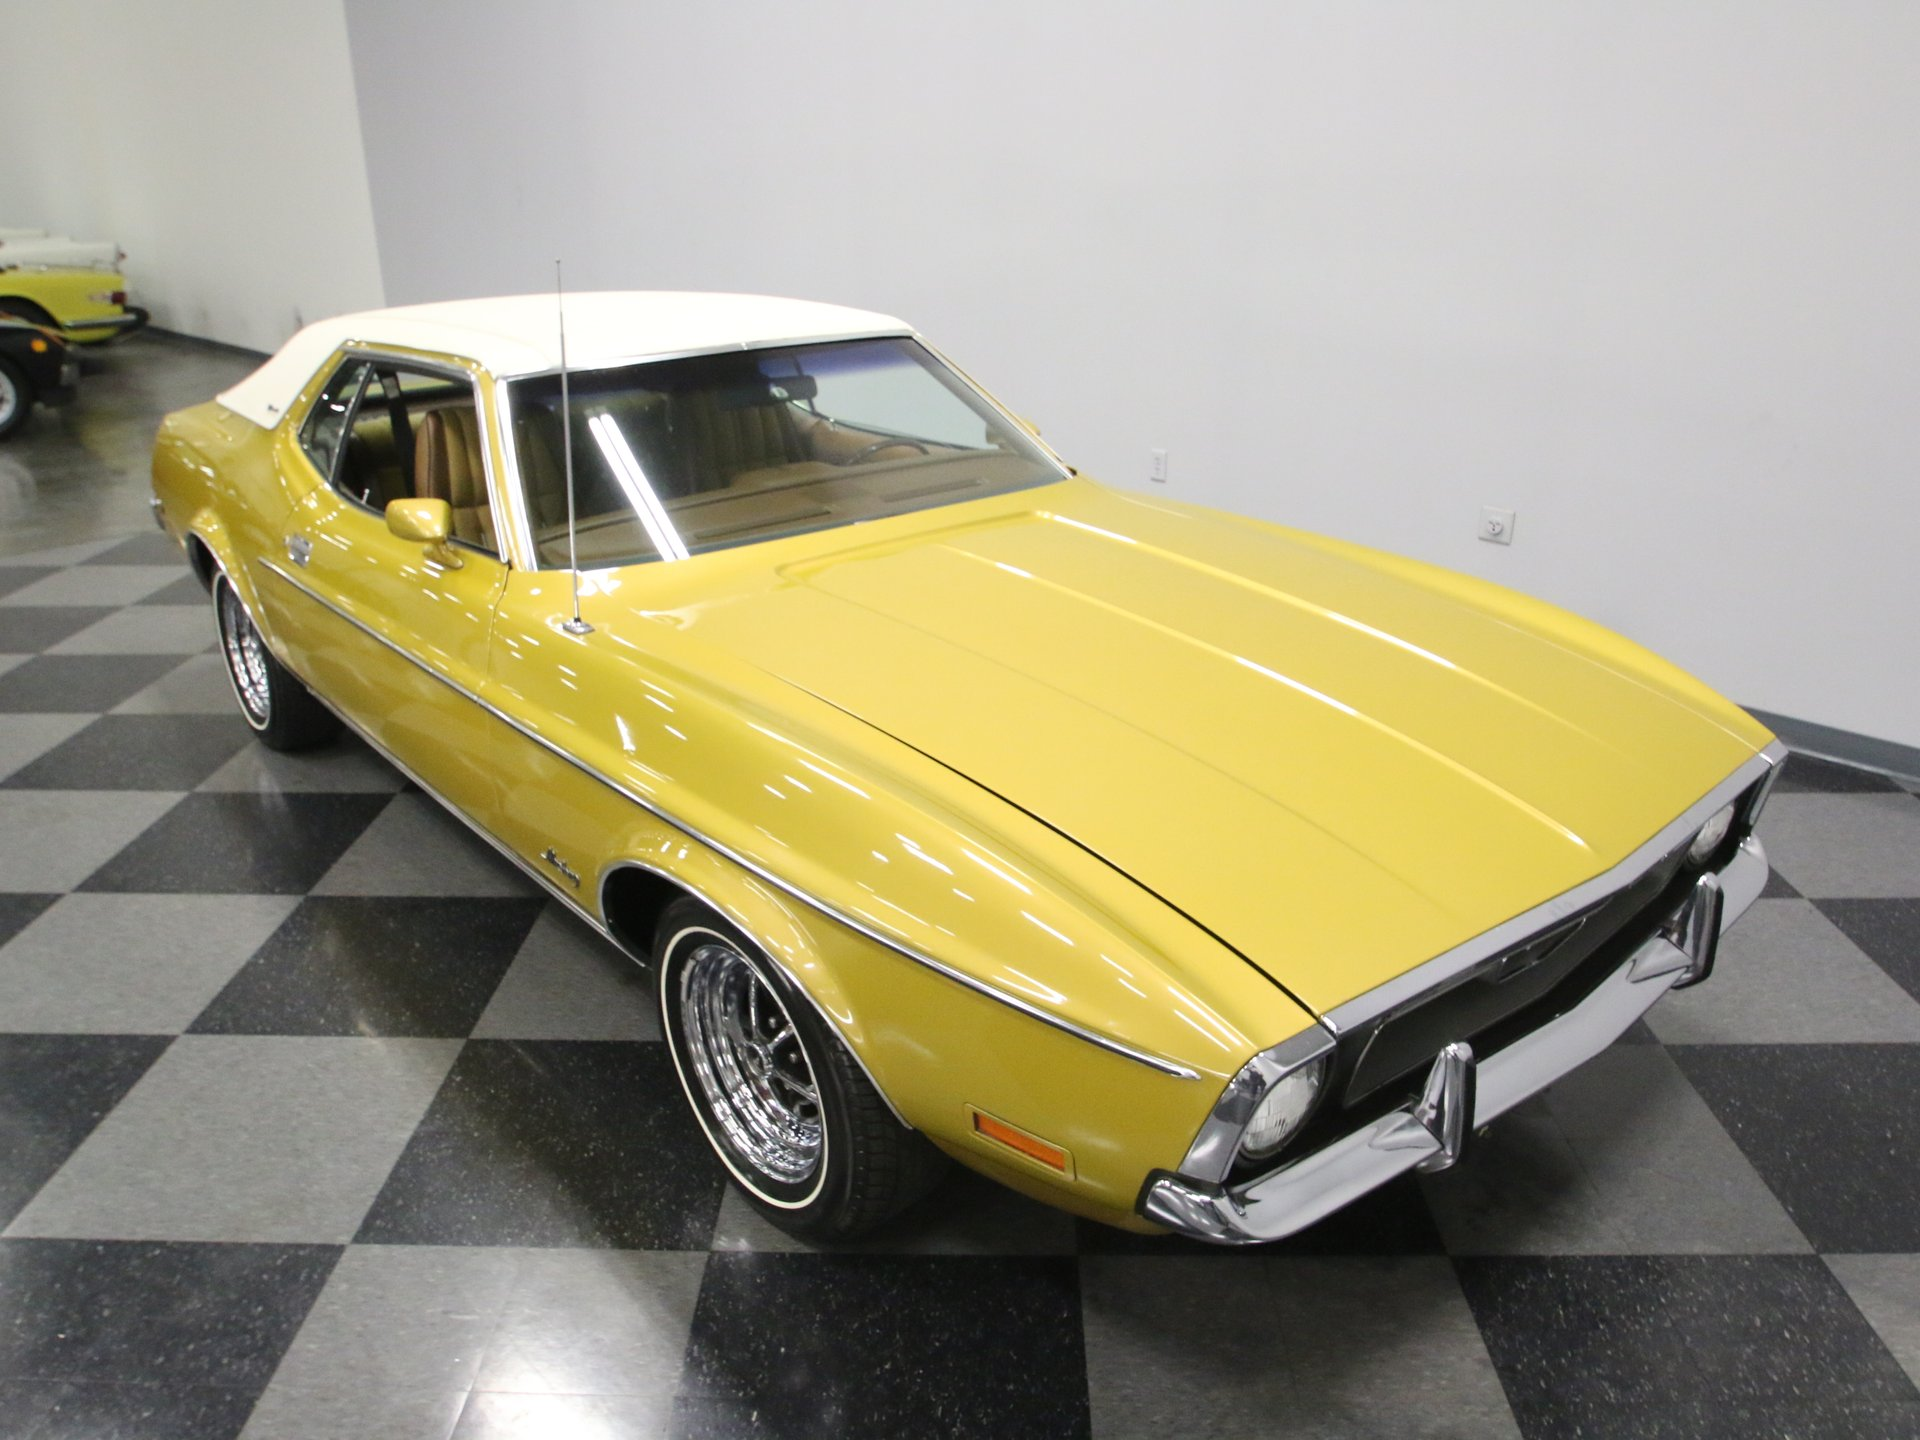 For sale 1972 ford mustang spincar view play video view 360